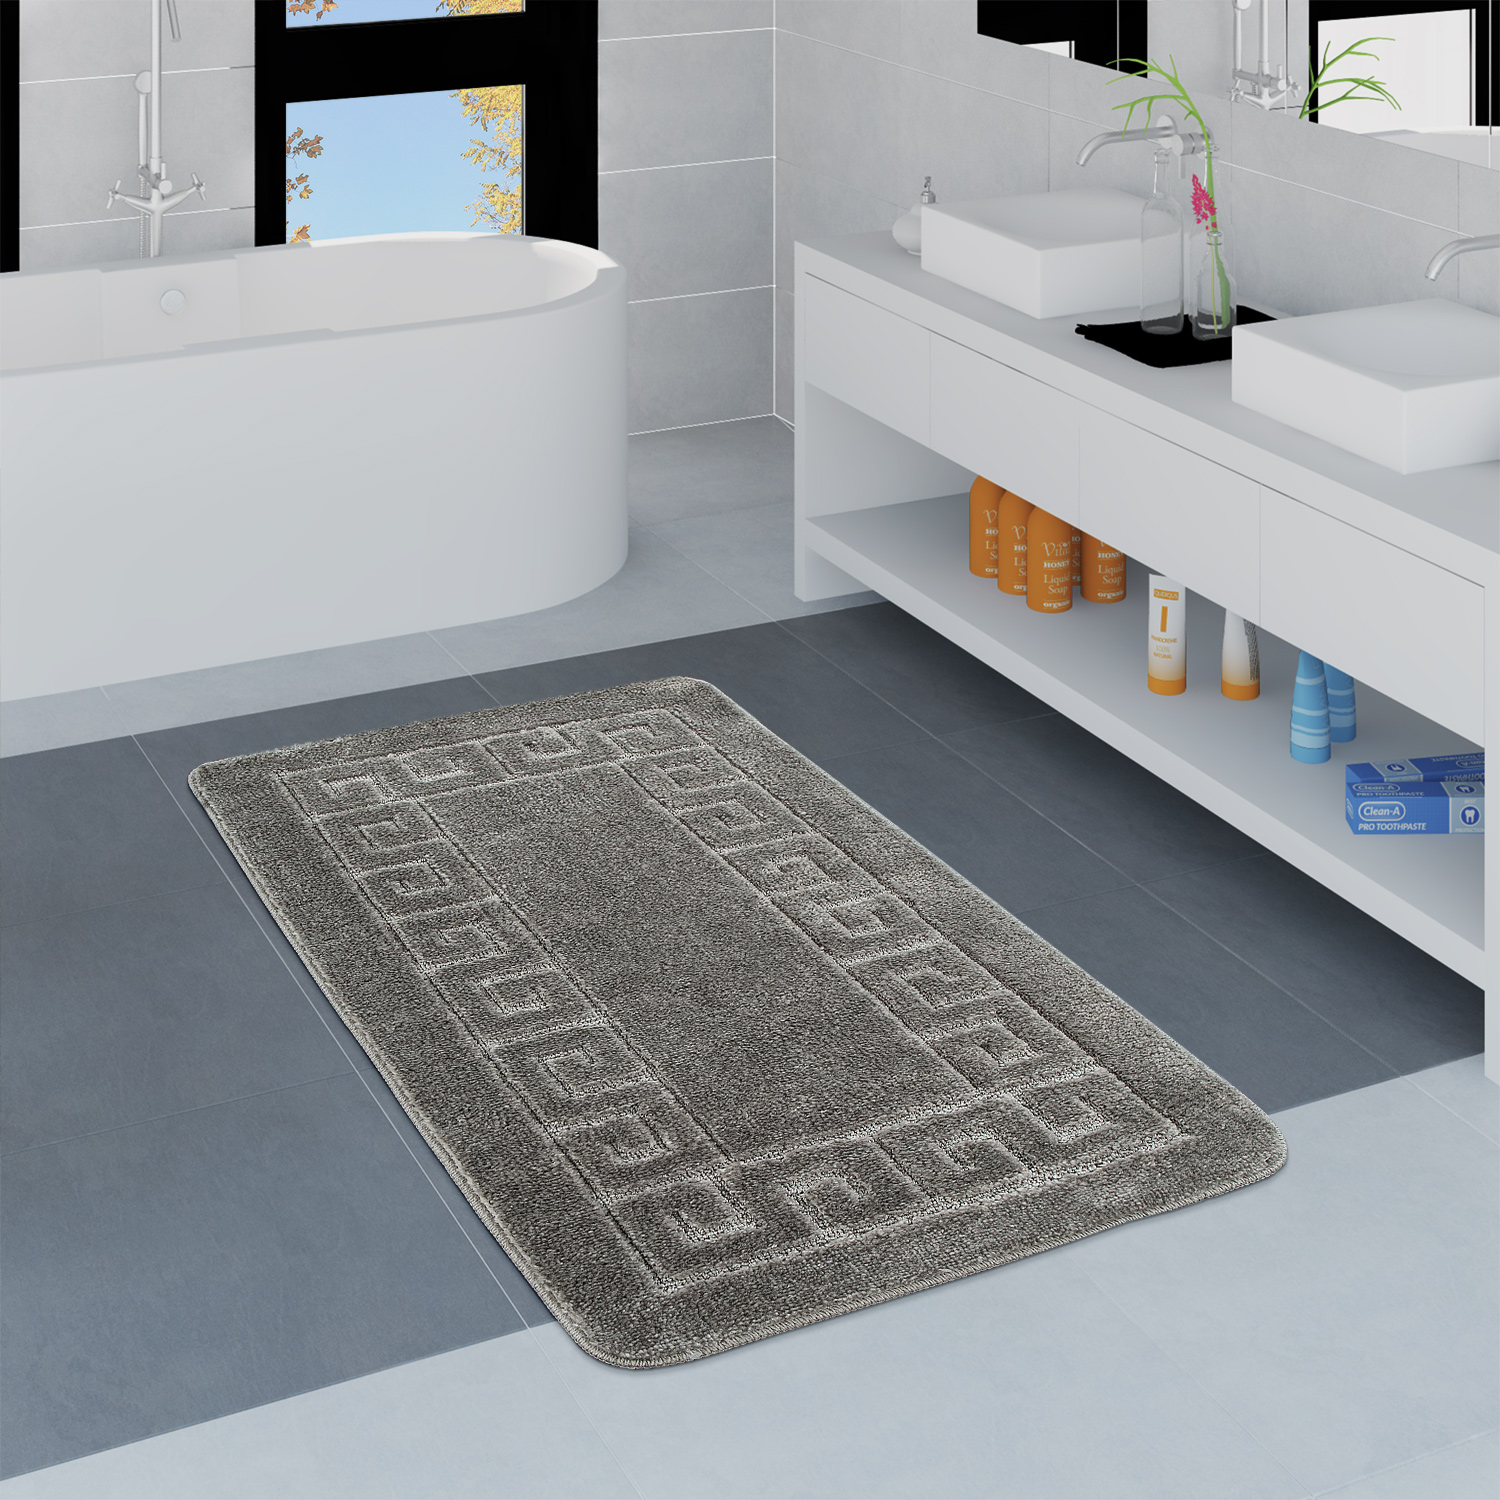 Modern Bathroom Rug Border Bathmat Non-Slip Bathroom Mat In Grey